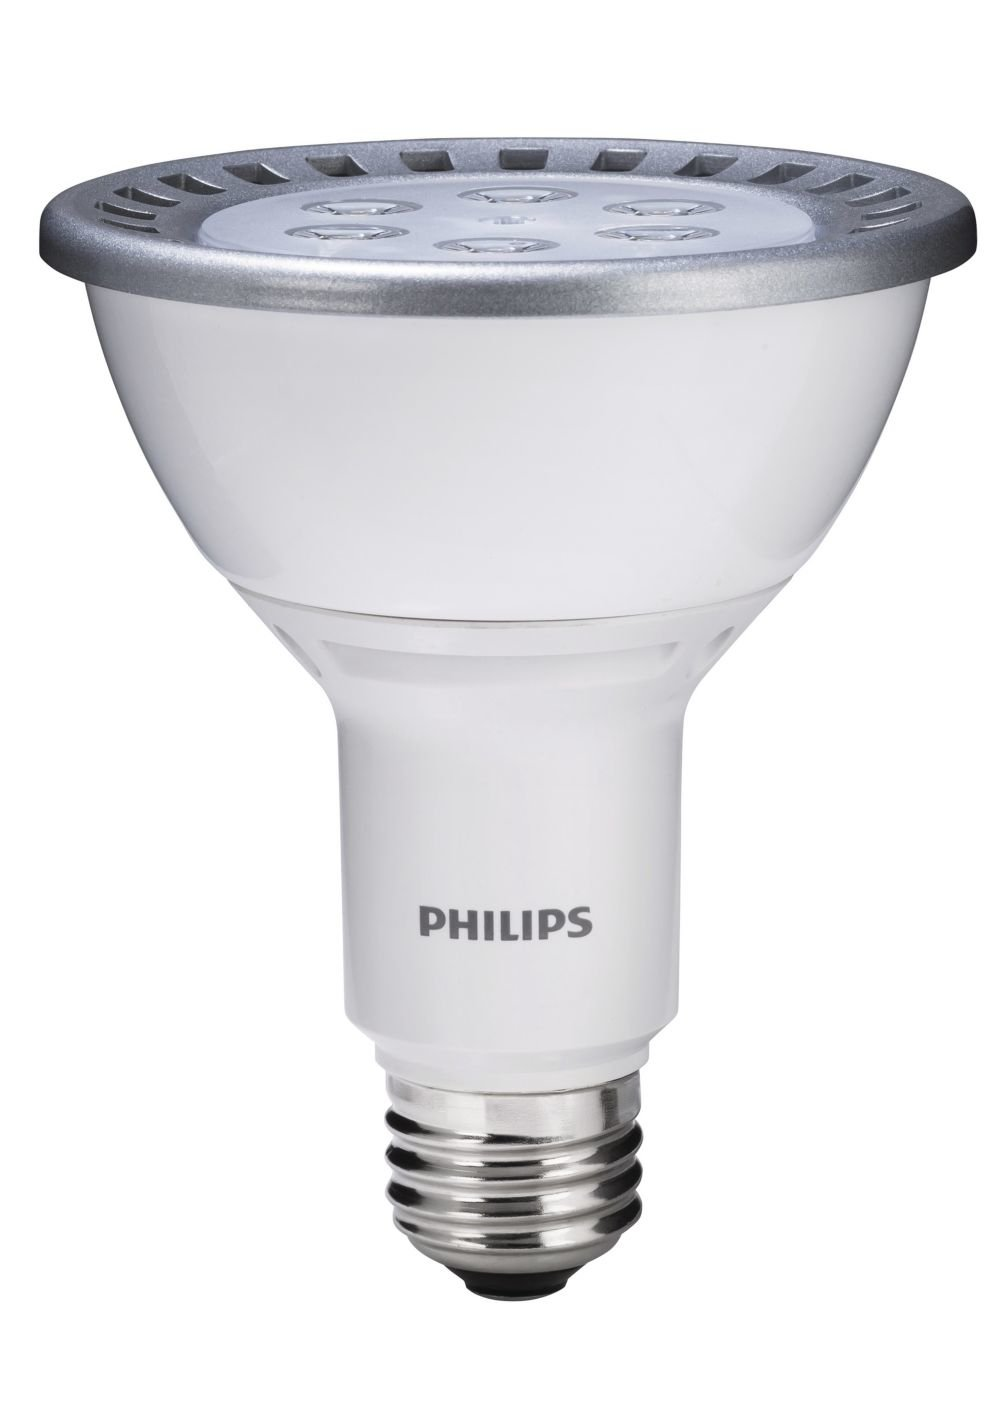 Philips 420315 13-Watt (75-Watt) PAR30L LED 3000K Indoor Flood Light ...